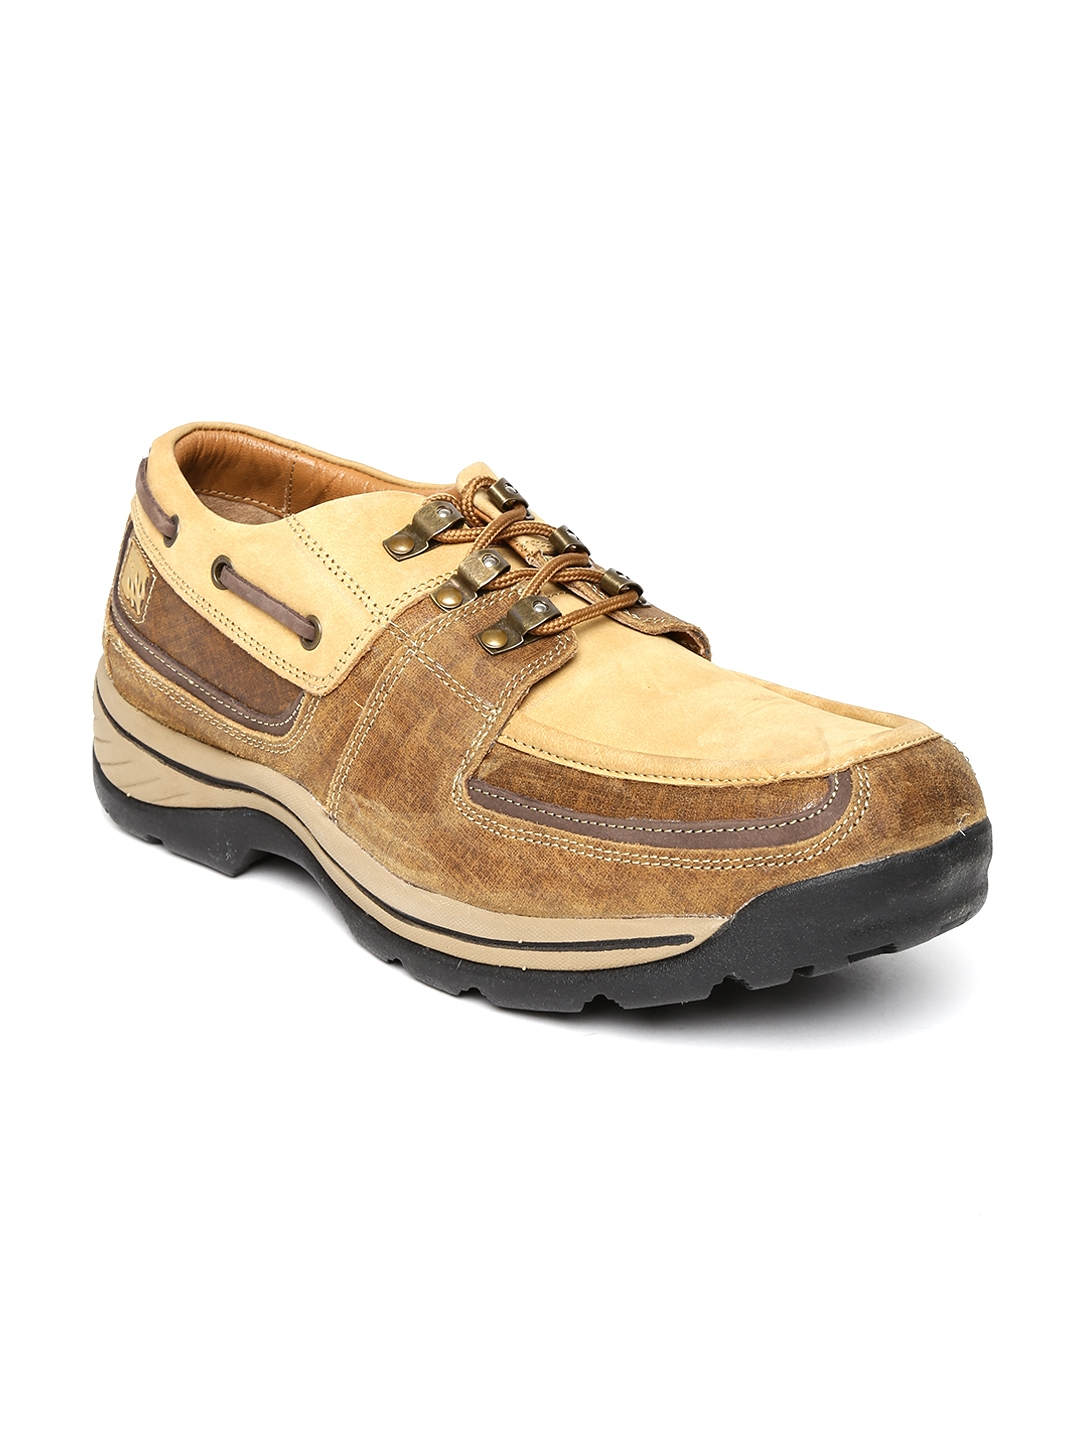 820d22263a6e Buy Woodland ProPlanet Men Camel Brown Leather Casual Shoes - Casual ...